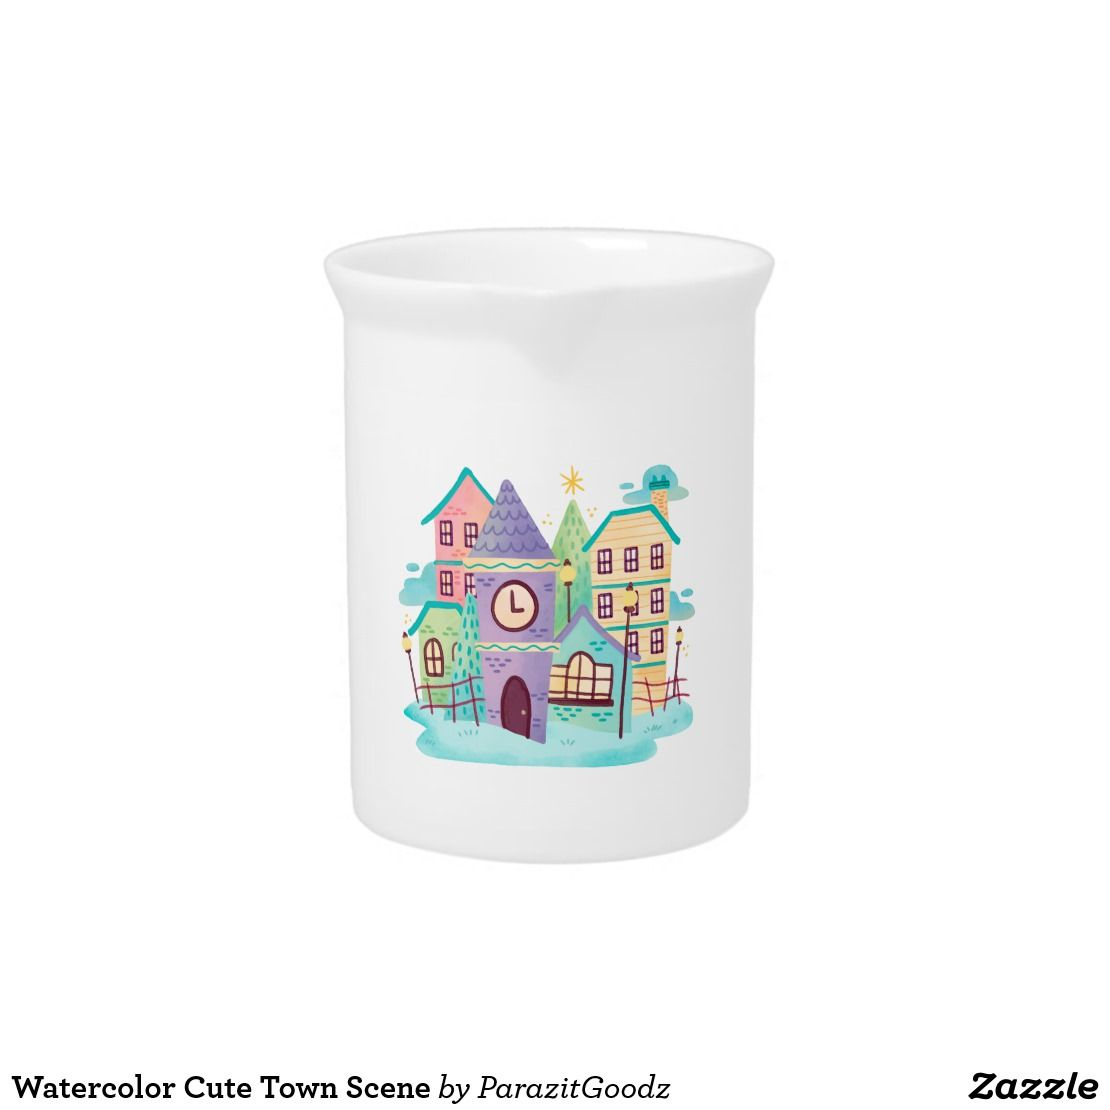 You will feel at home and neighborhood with this watercolor cute town design products